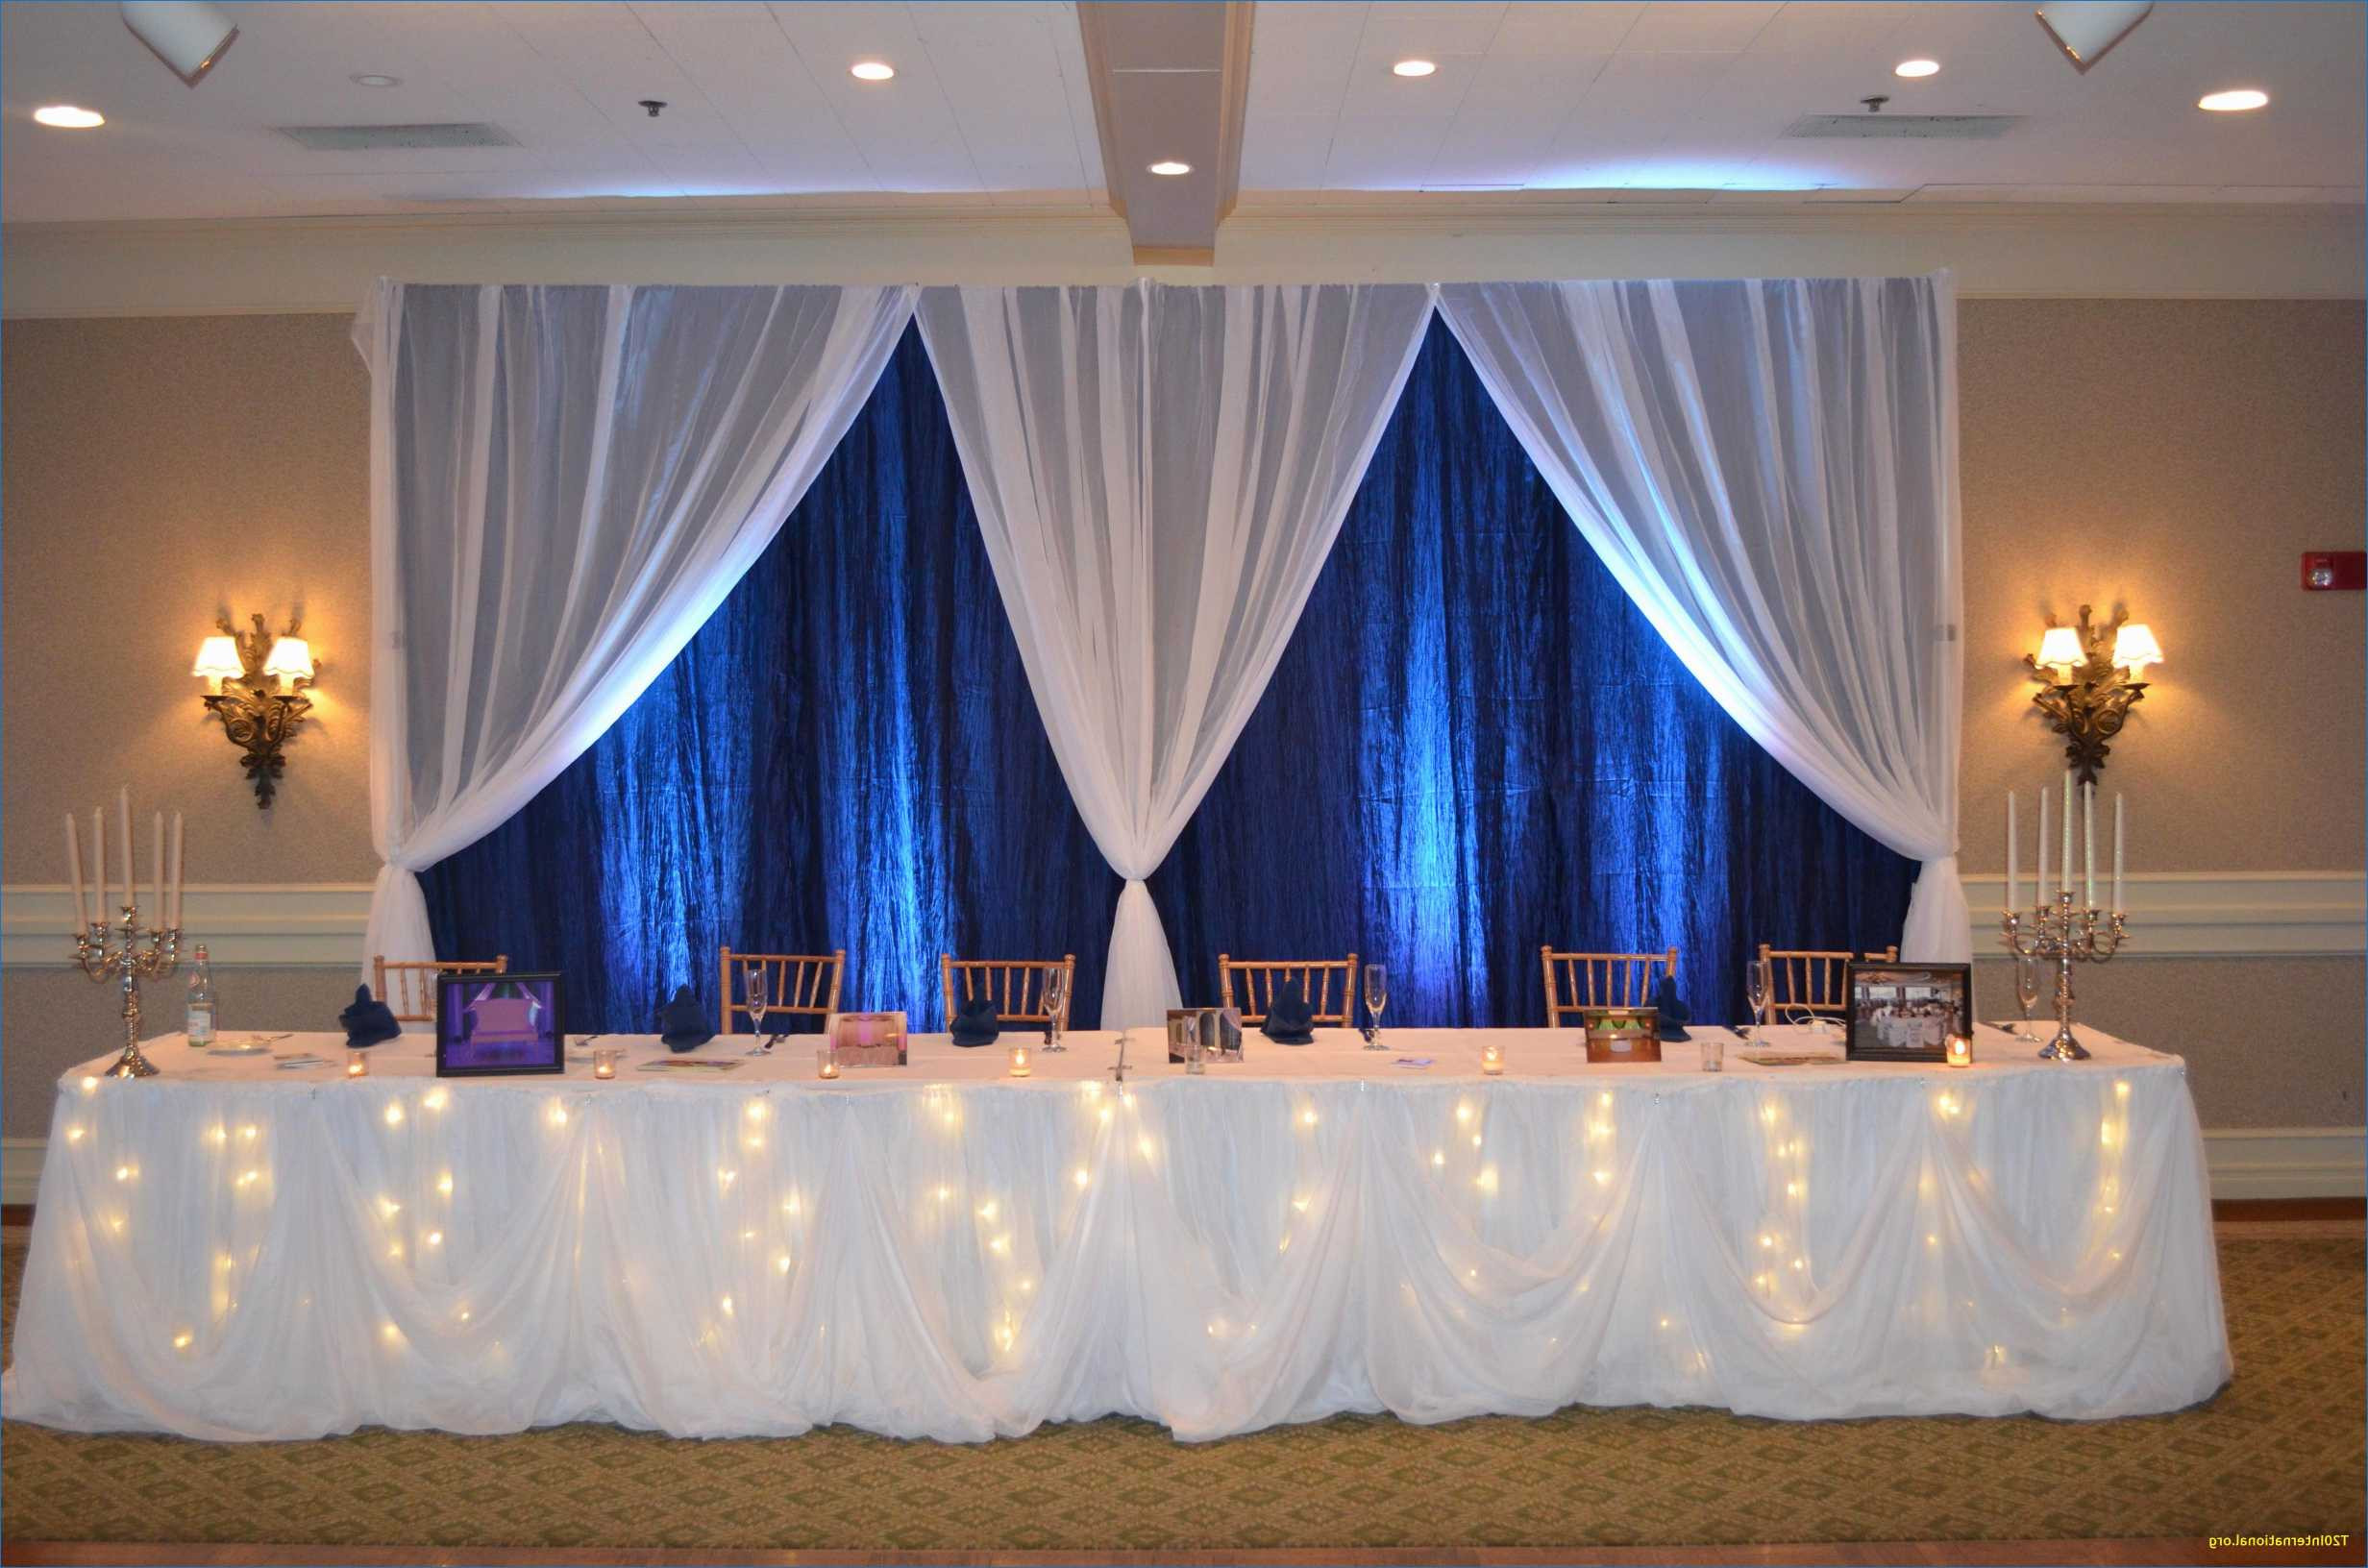 vase rentals miami of where to get birthday party tent rentals tent information pertaining to tent decorating ideas for birthday party 5 list fine wedding planning as well cheap wedding reception